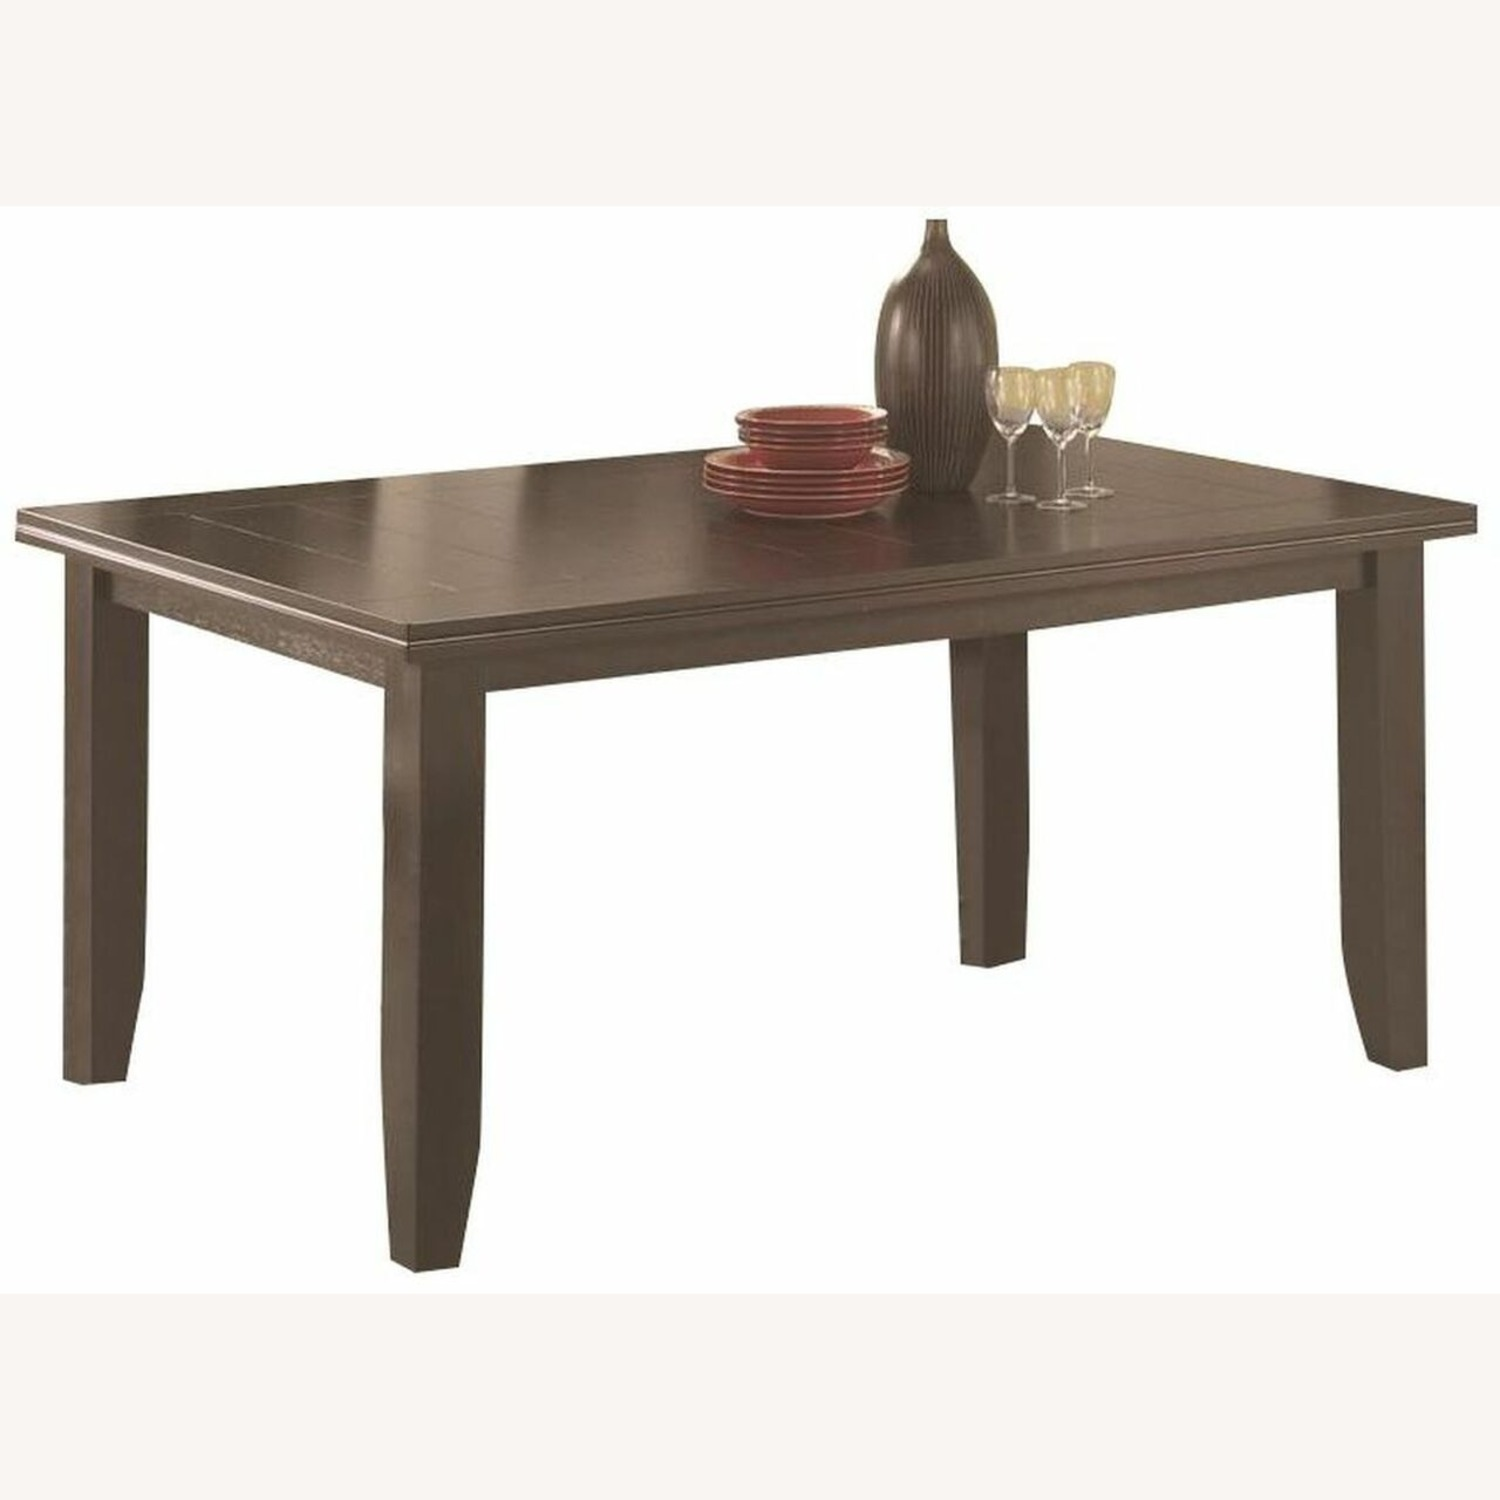 Dining Table In Cappuccino W/ Plank Style Tabletop - image-1